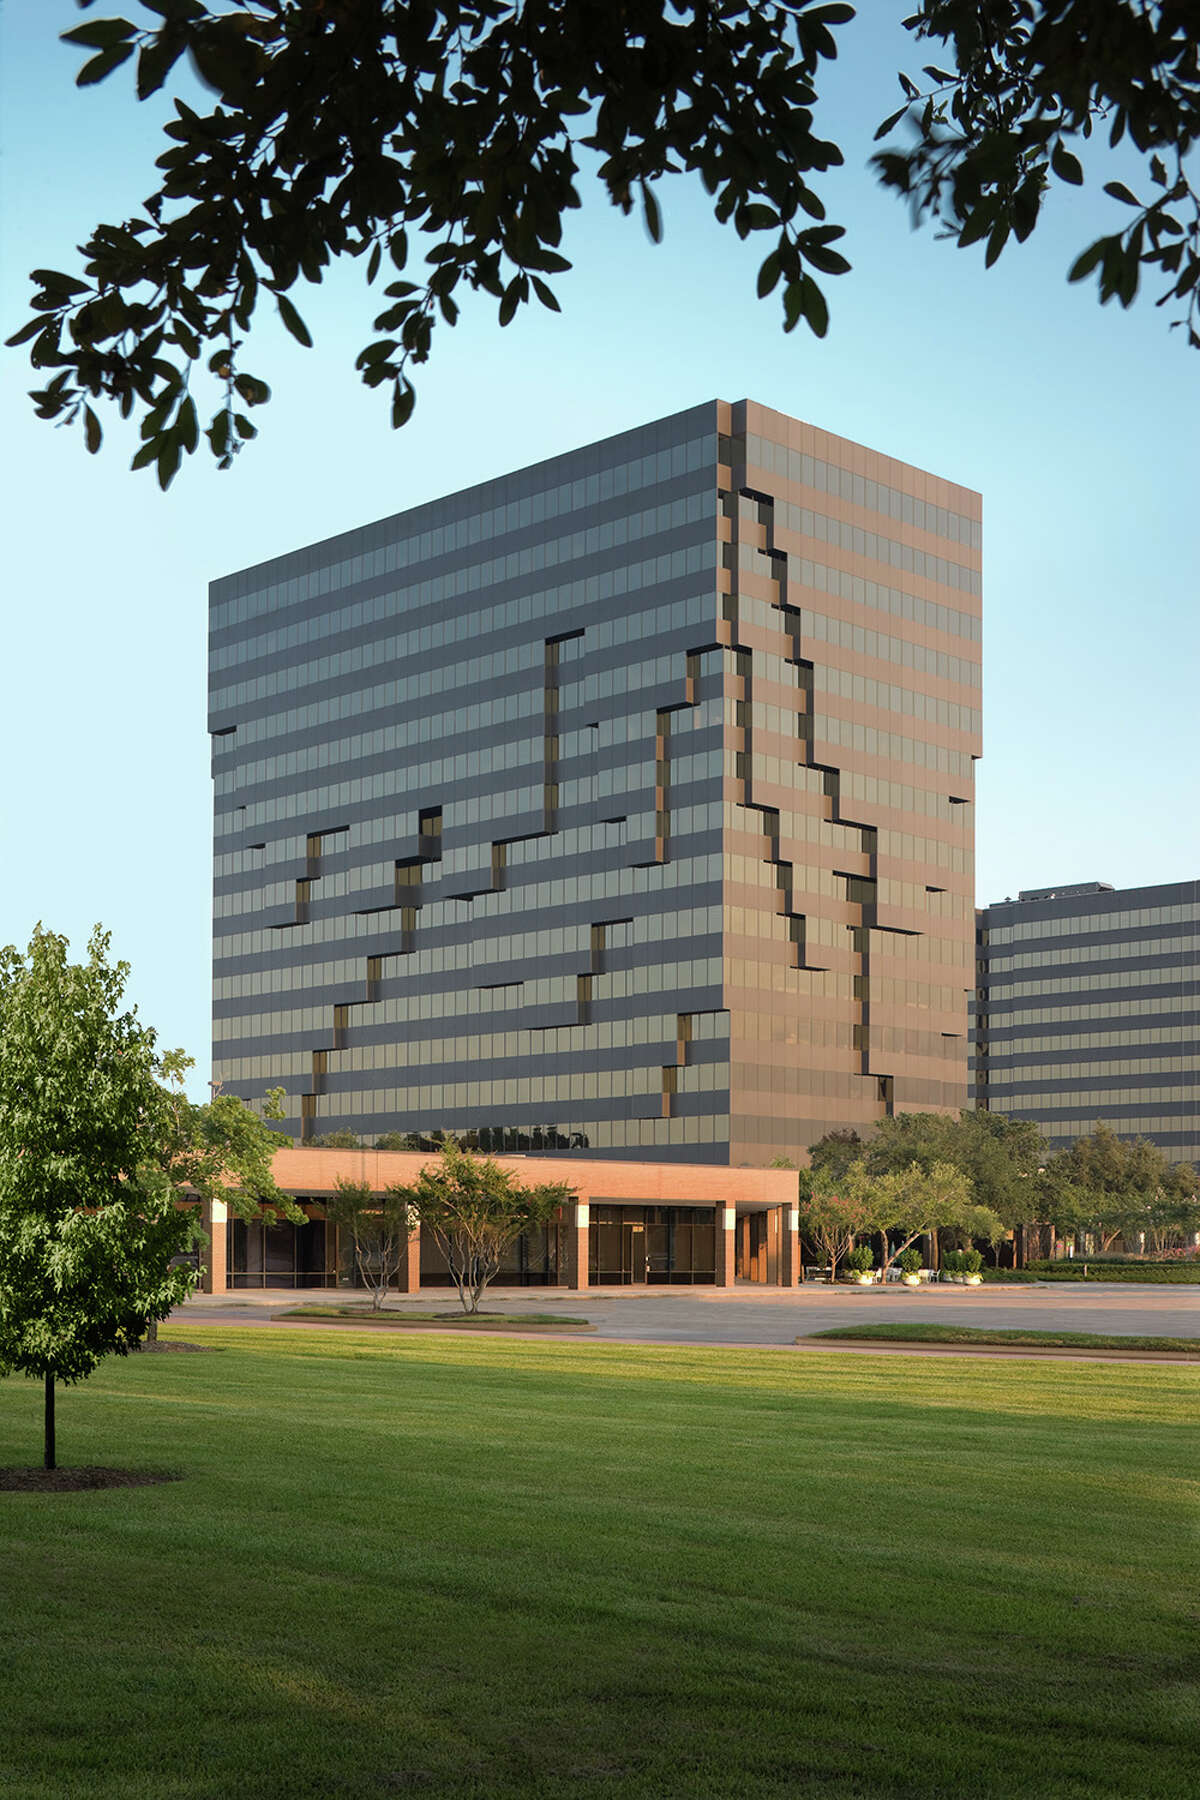 Hunting Energy Services has leased 62,137 square feet at 16825 Northchase Drive.